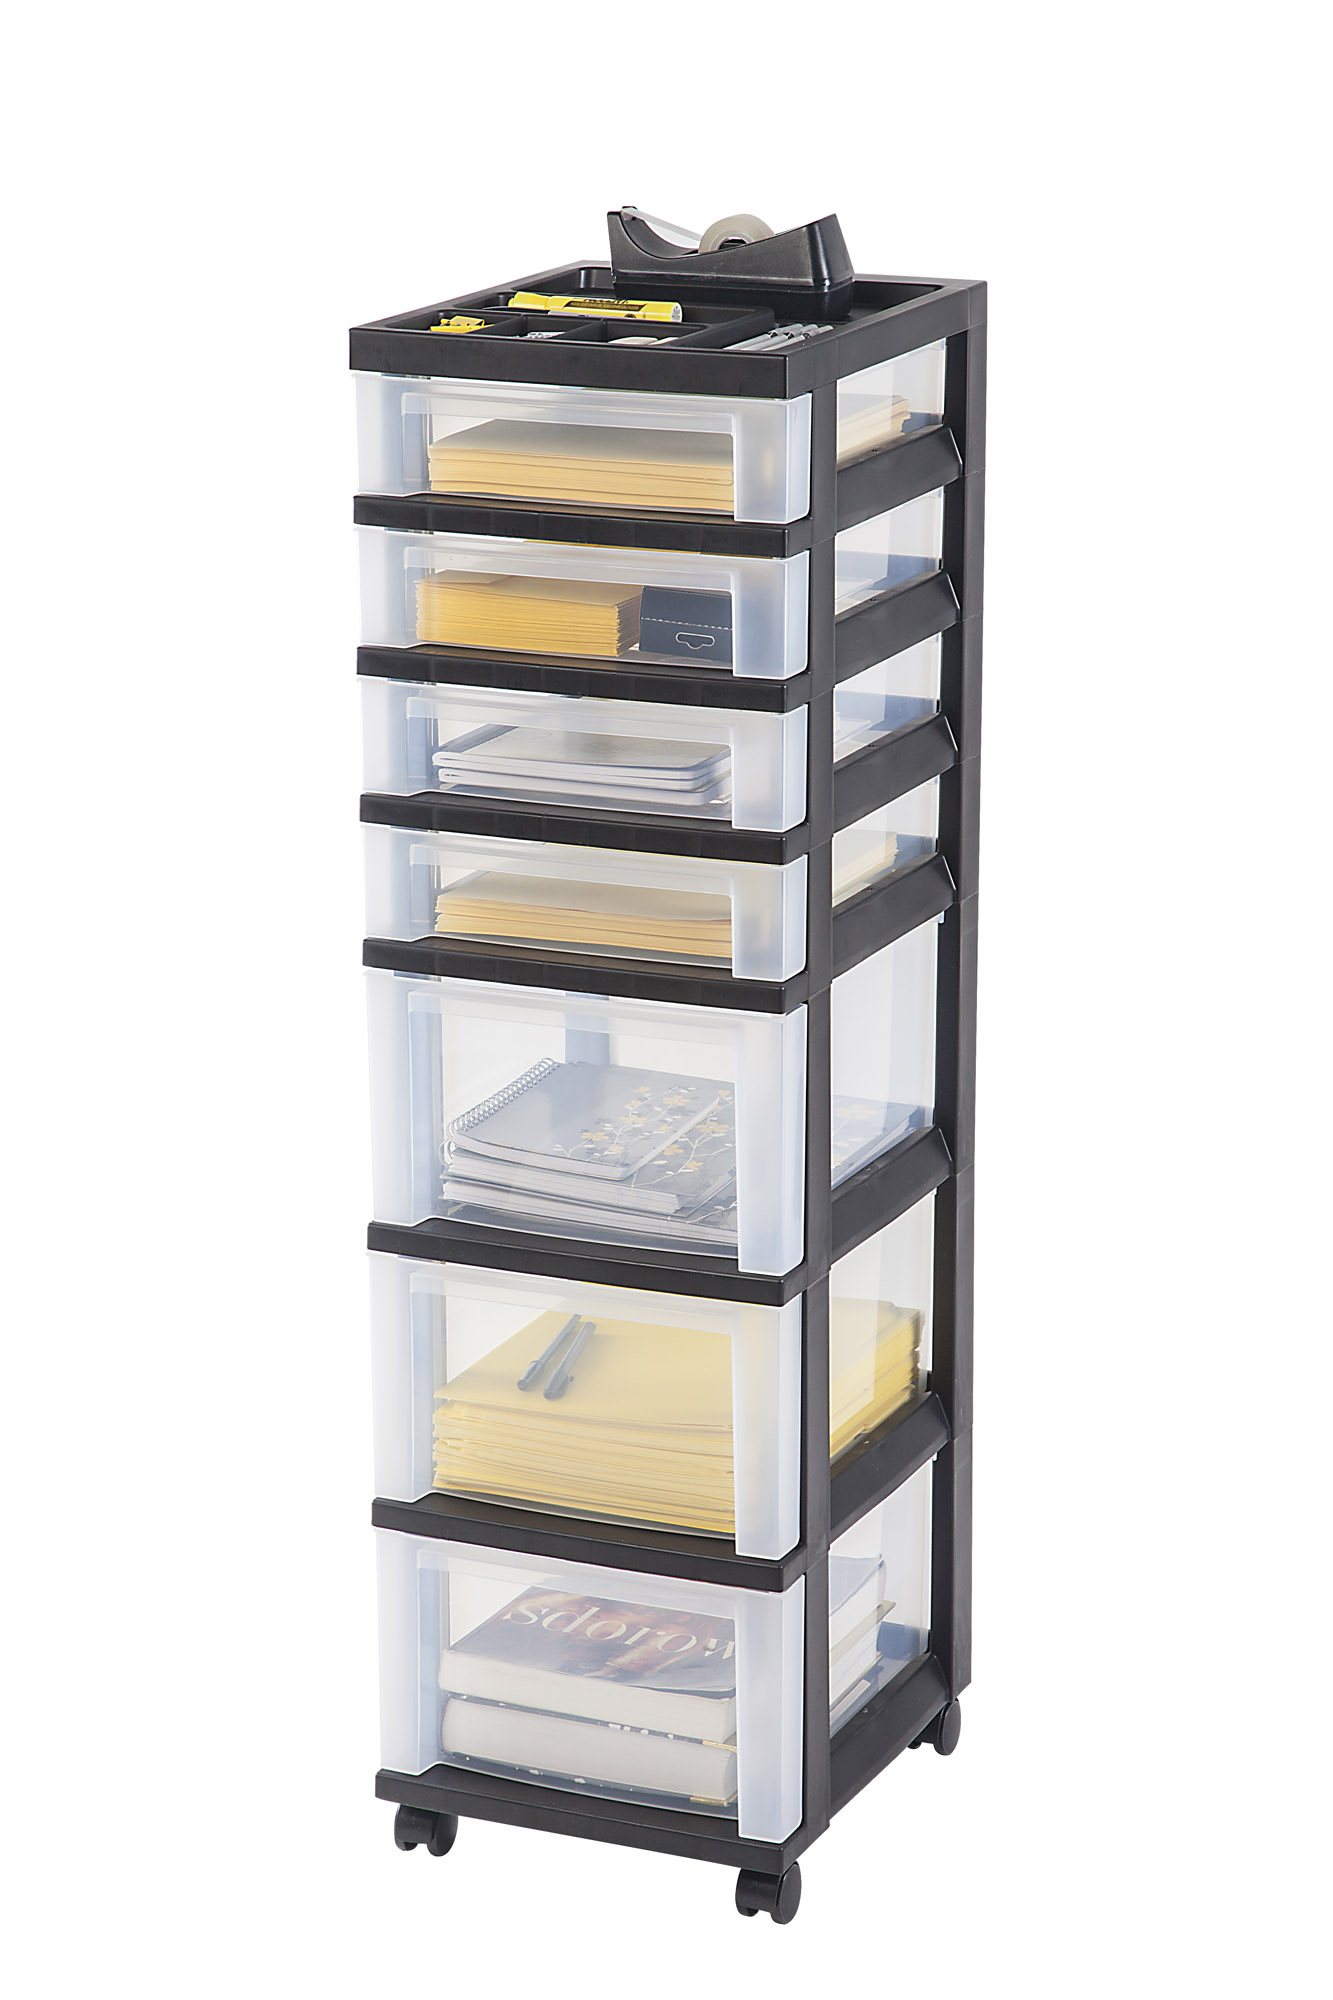 IRIS 7 Drawer Rolling Storage Cart With Organizer Top, Black